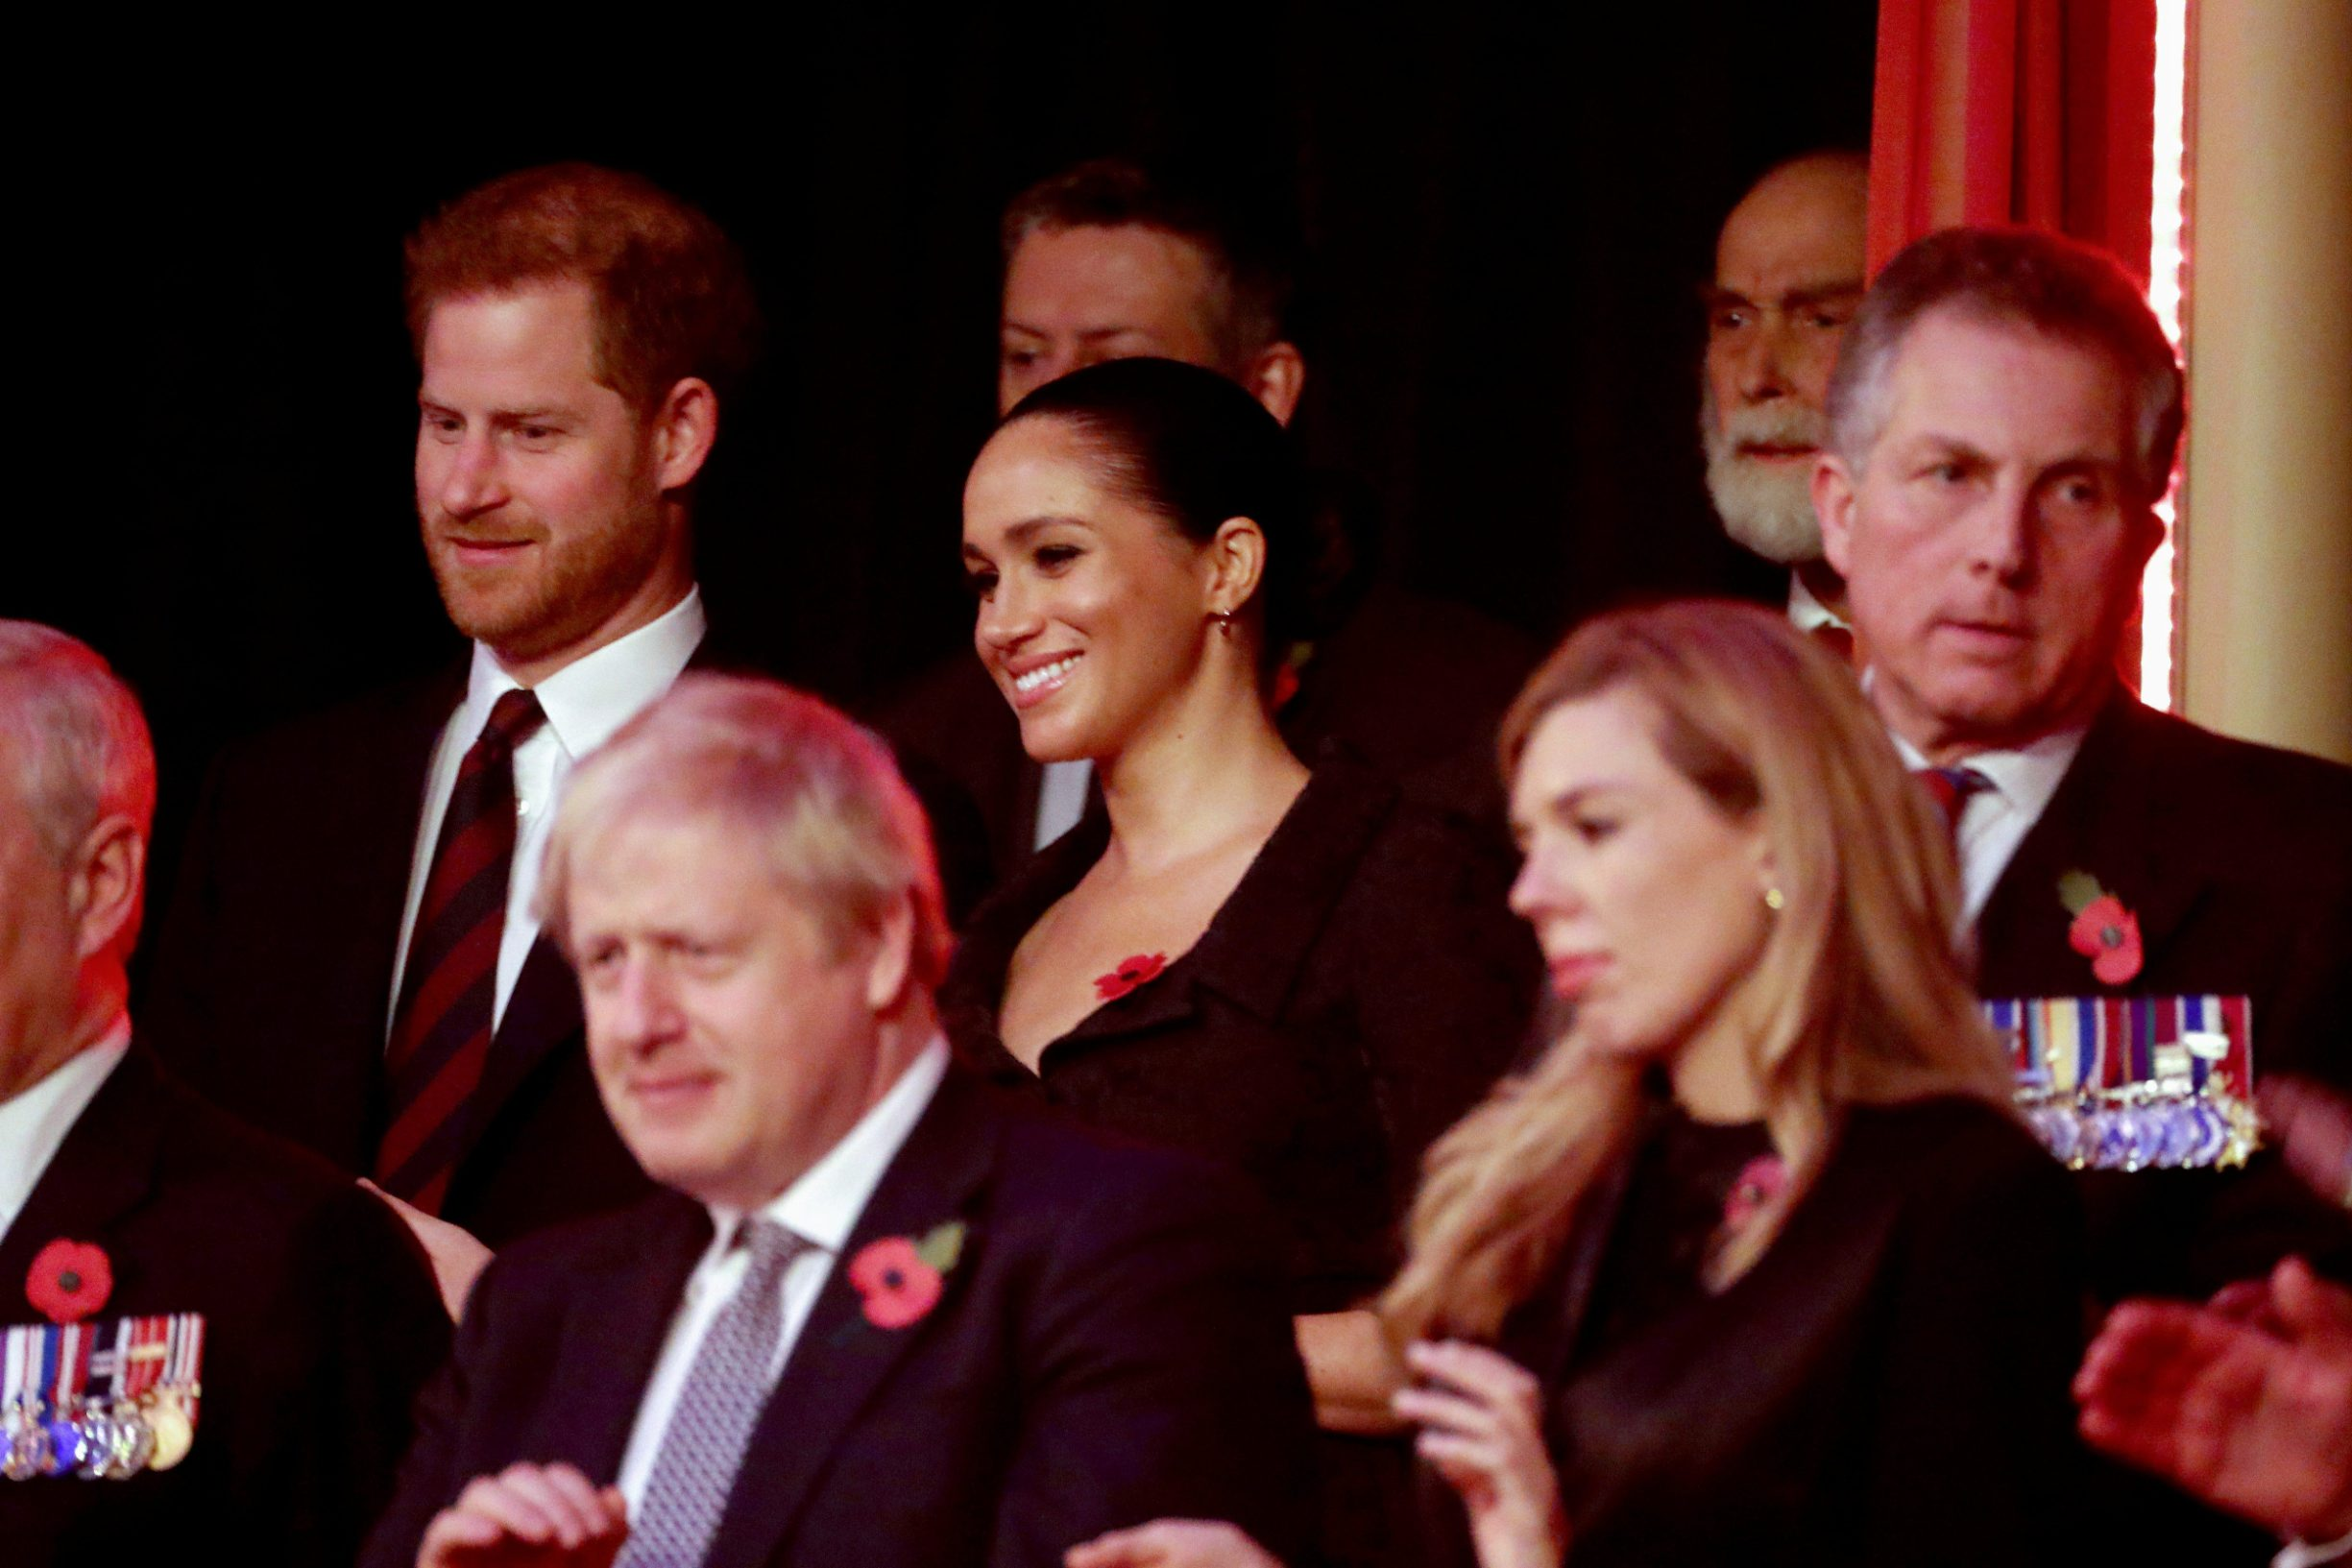 Britain's Prince Harry, Meghan, Duchess of Sussex, Prime Minister Boris Johnson and Carrie Symonds attend the annual Royal British Legion Festival of Remembrance at the Royal Albert Hall, London, Britain, November 9, 2019.  Chris Jackson/Pool/via REUTERS